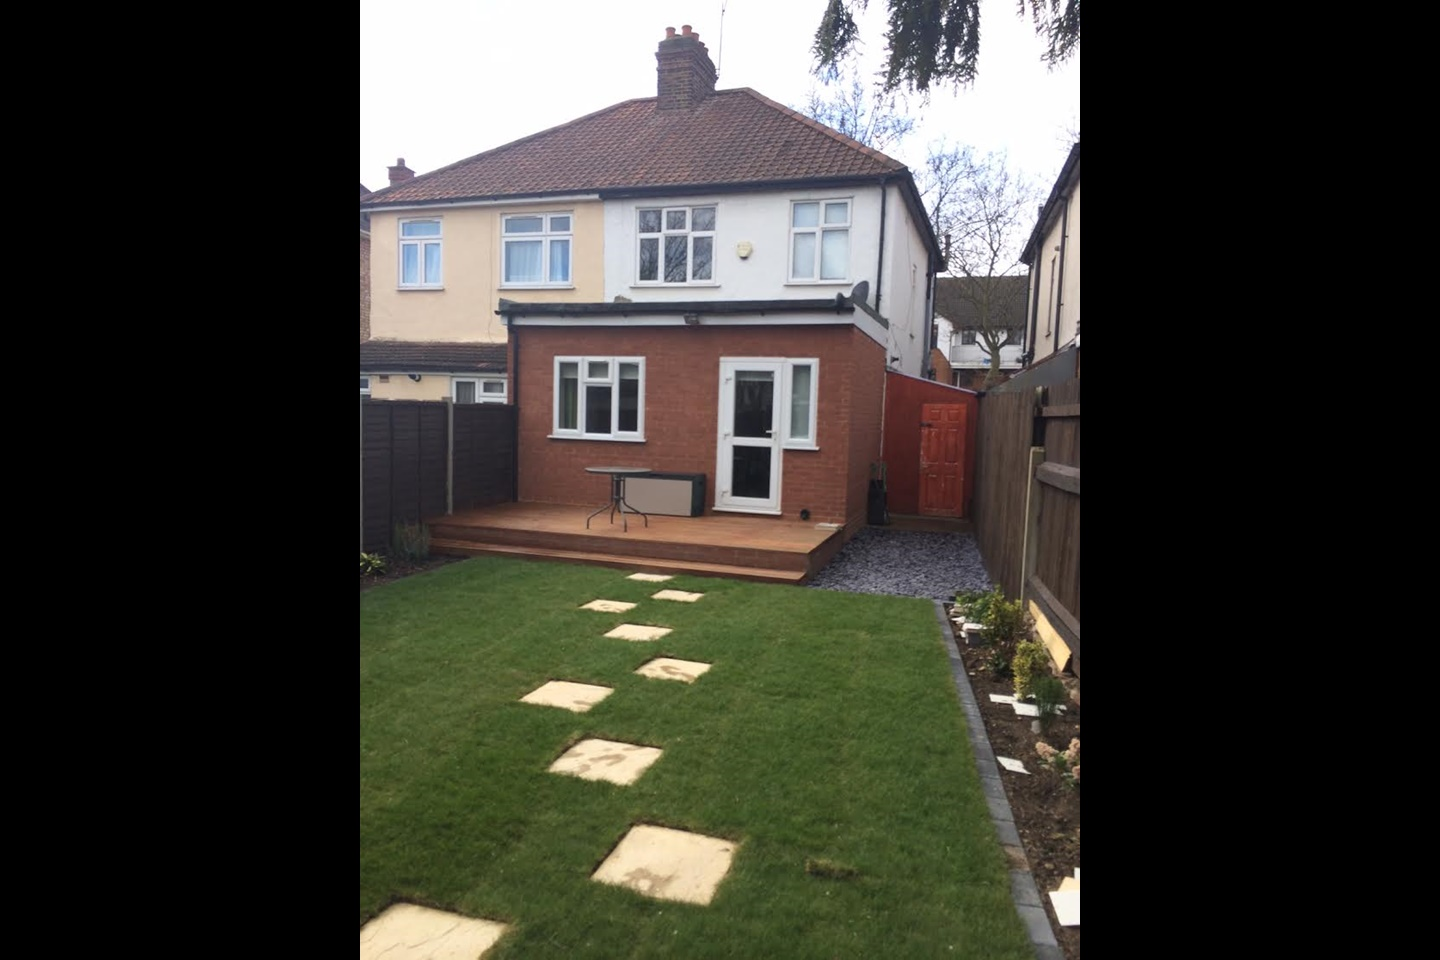 4 Bedroom Houses For Rent In Hounslow 28 Images For Rent Houses Private Hounslow Mitula